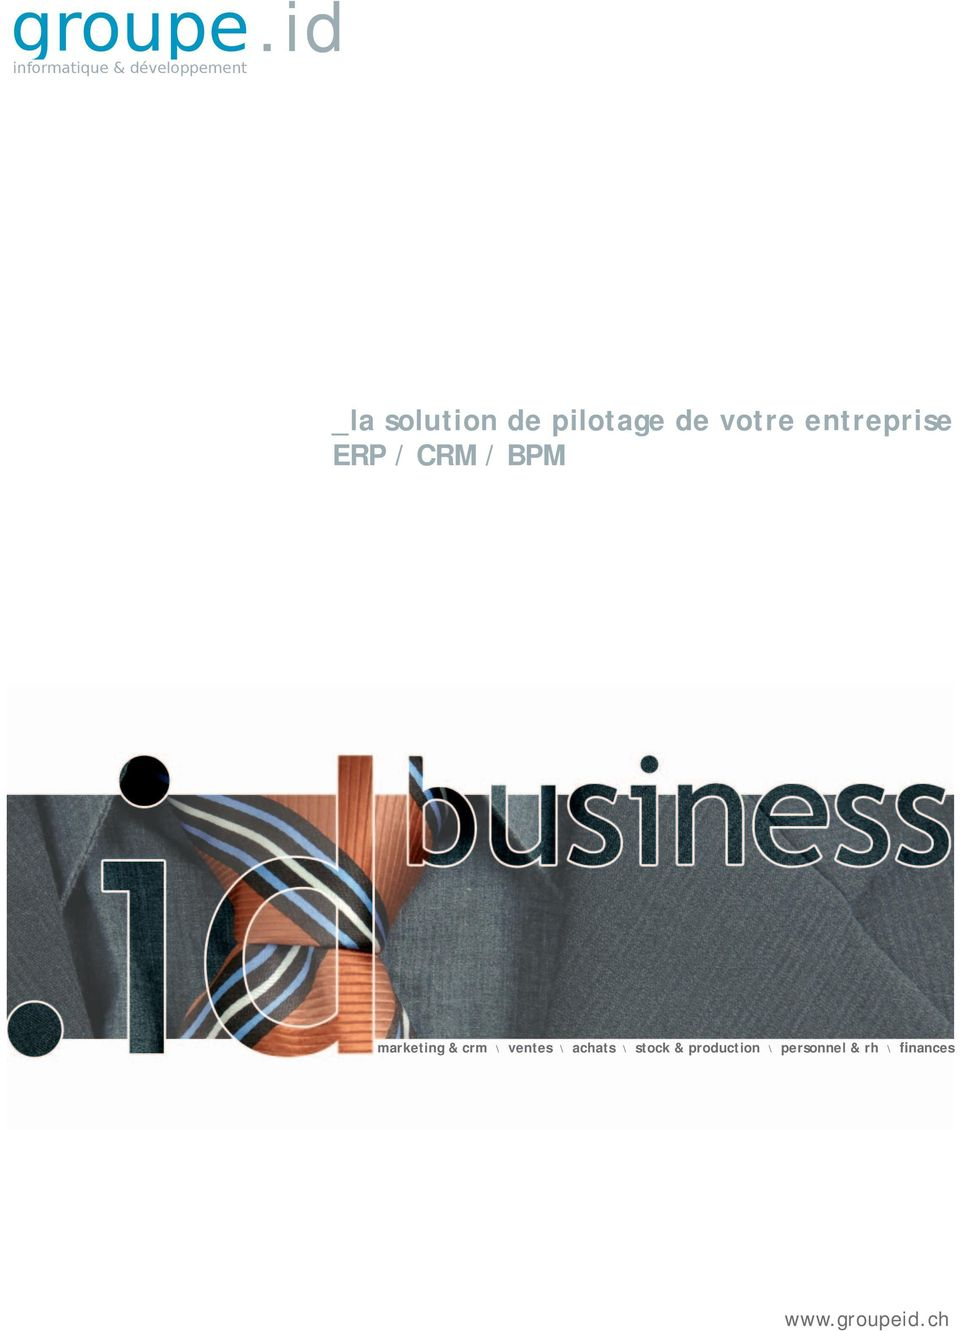 entreprise ERP / CRM / BPM marketing